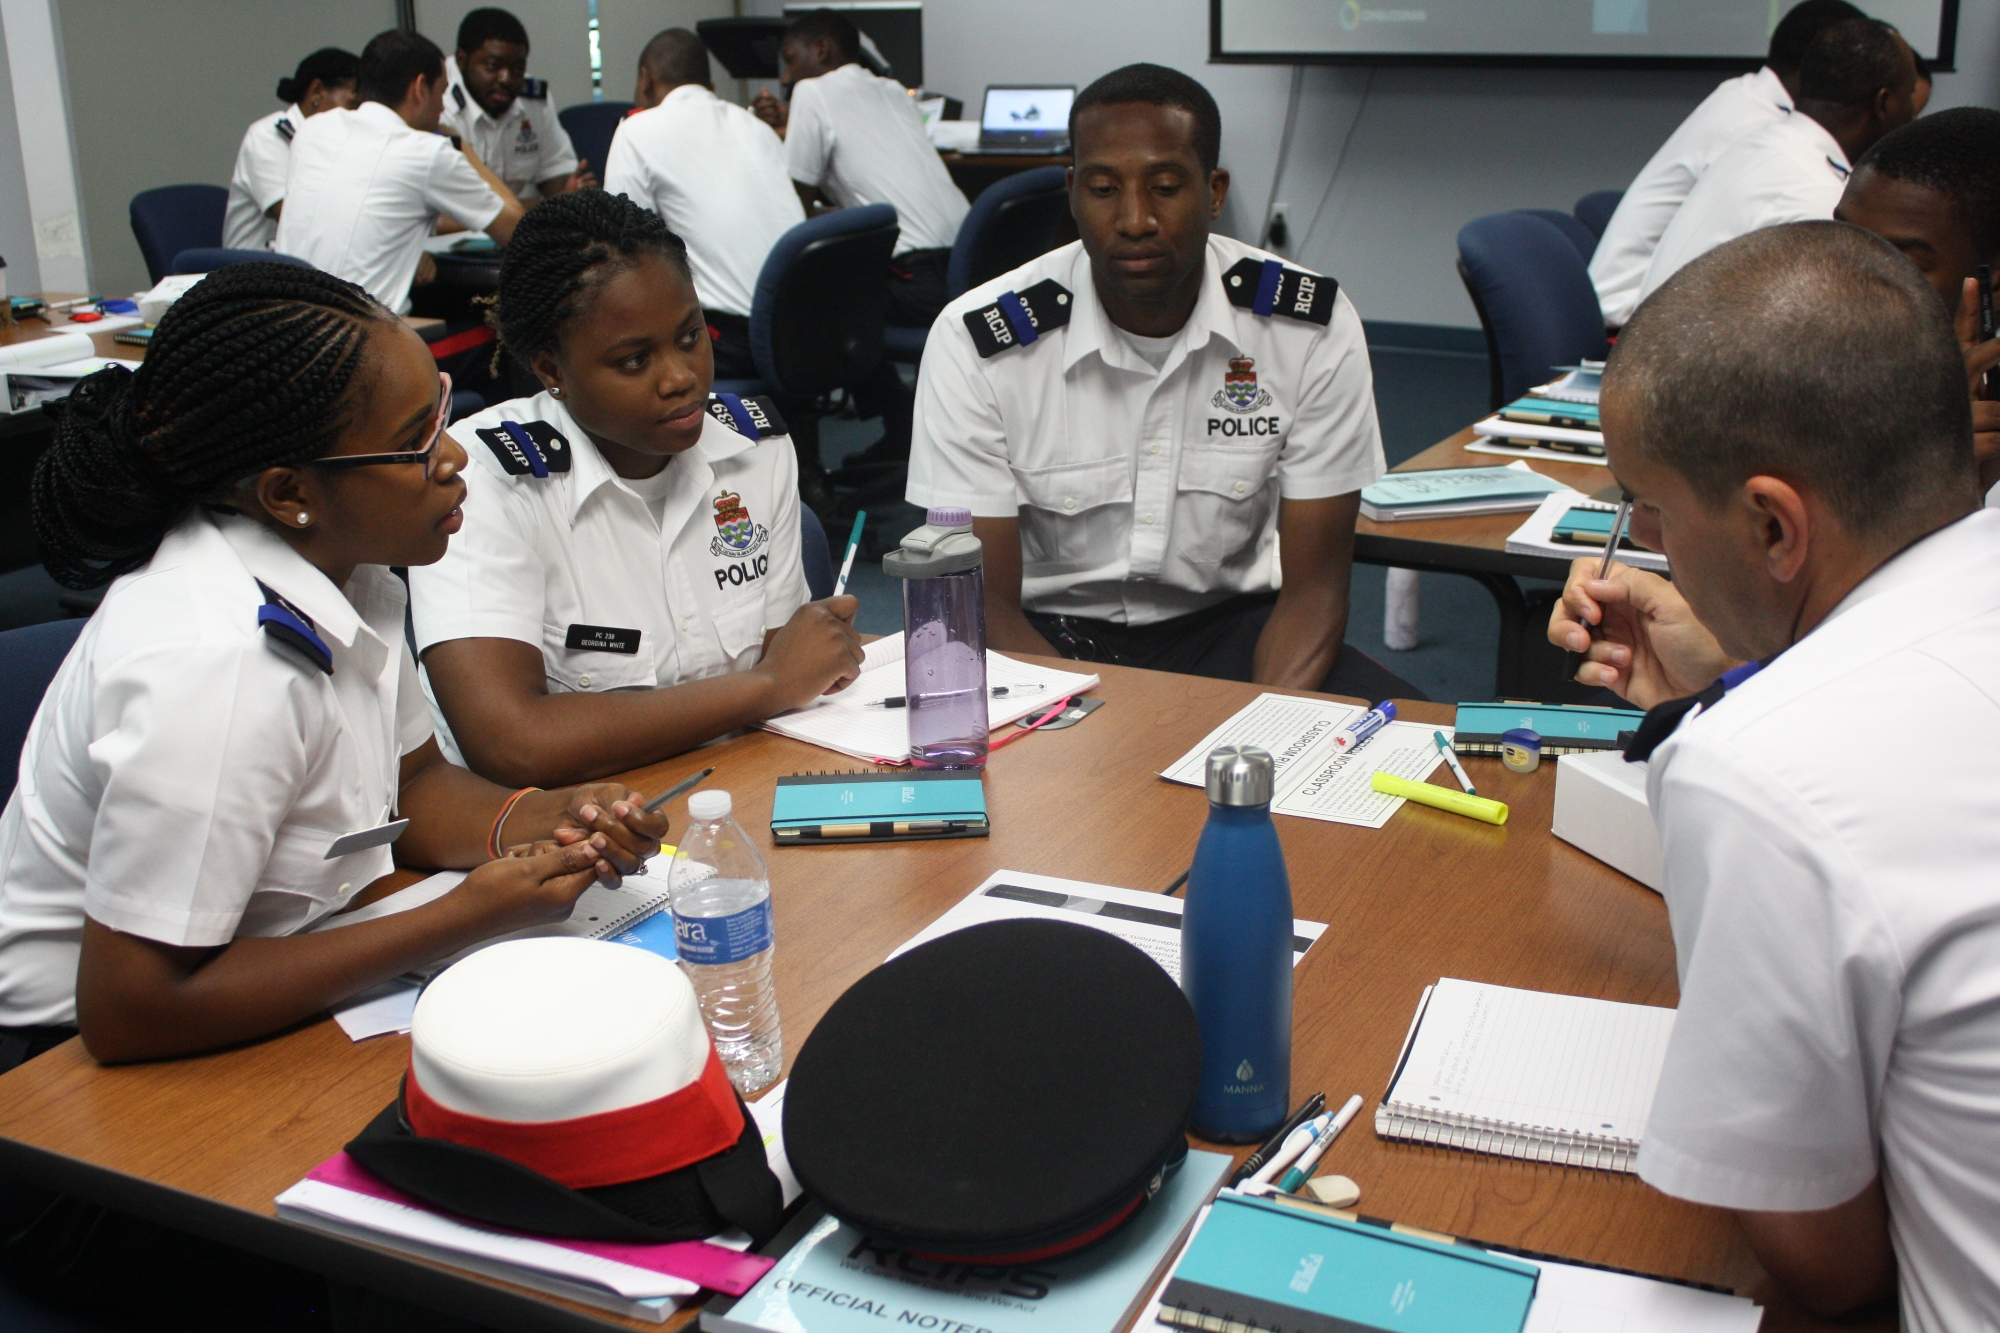 A group of recruits discuss an example case.